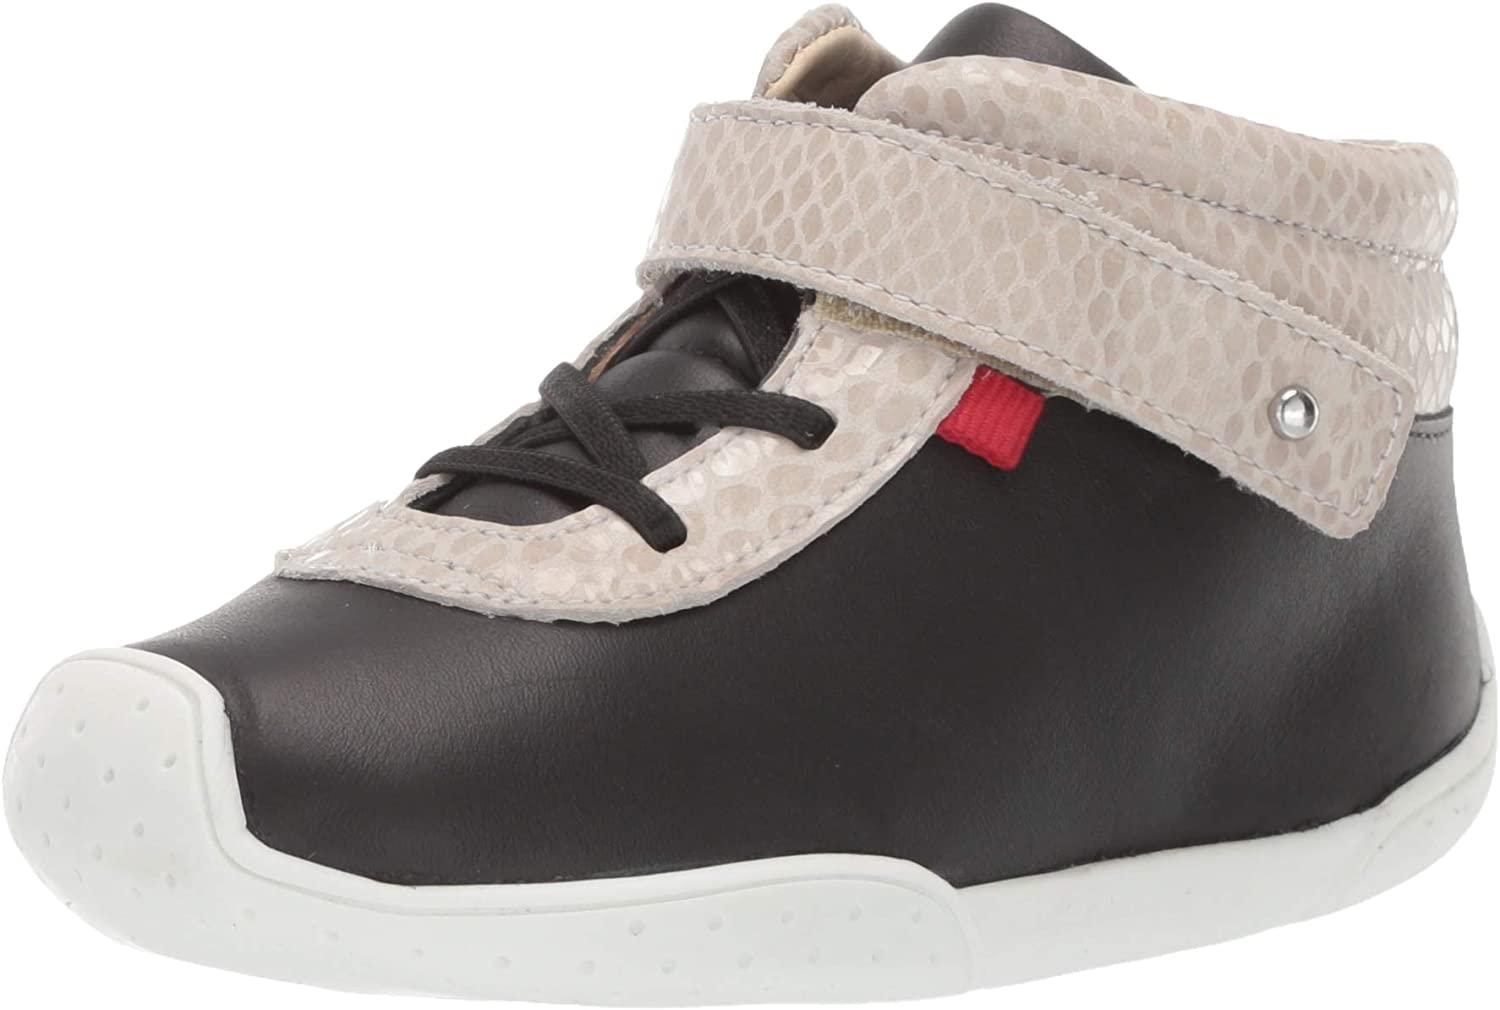 MARC JOSEPH NEW Quality inspection YORK Unisex-Child Max 88% OFF Toddlers Baby Girls Boys Leath